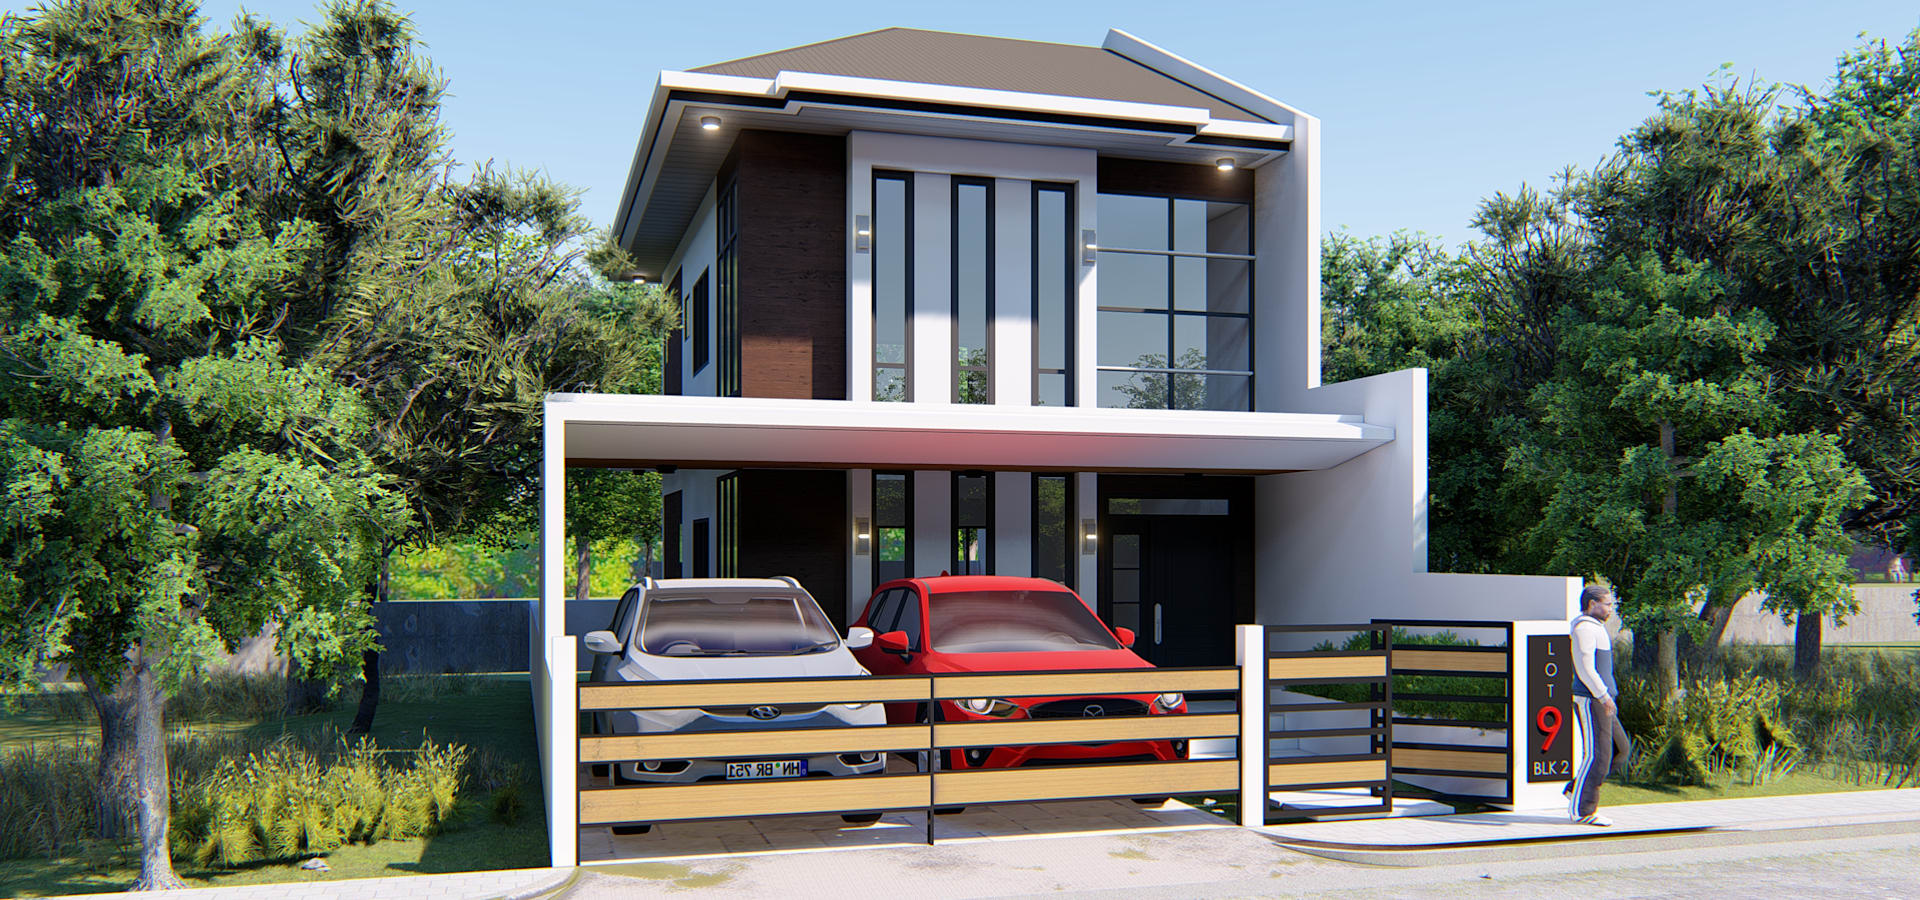 Proposed 2 Storey Zen Type Residence Homify